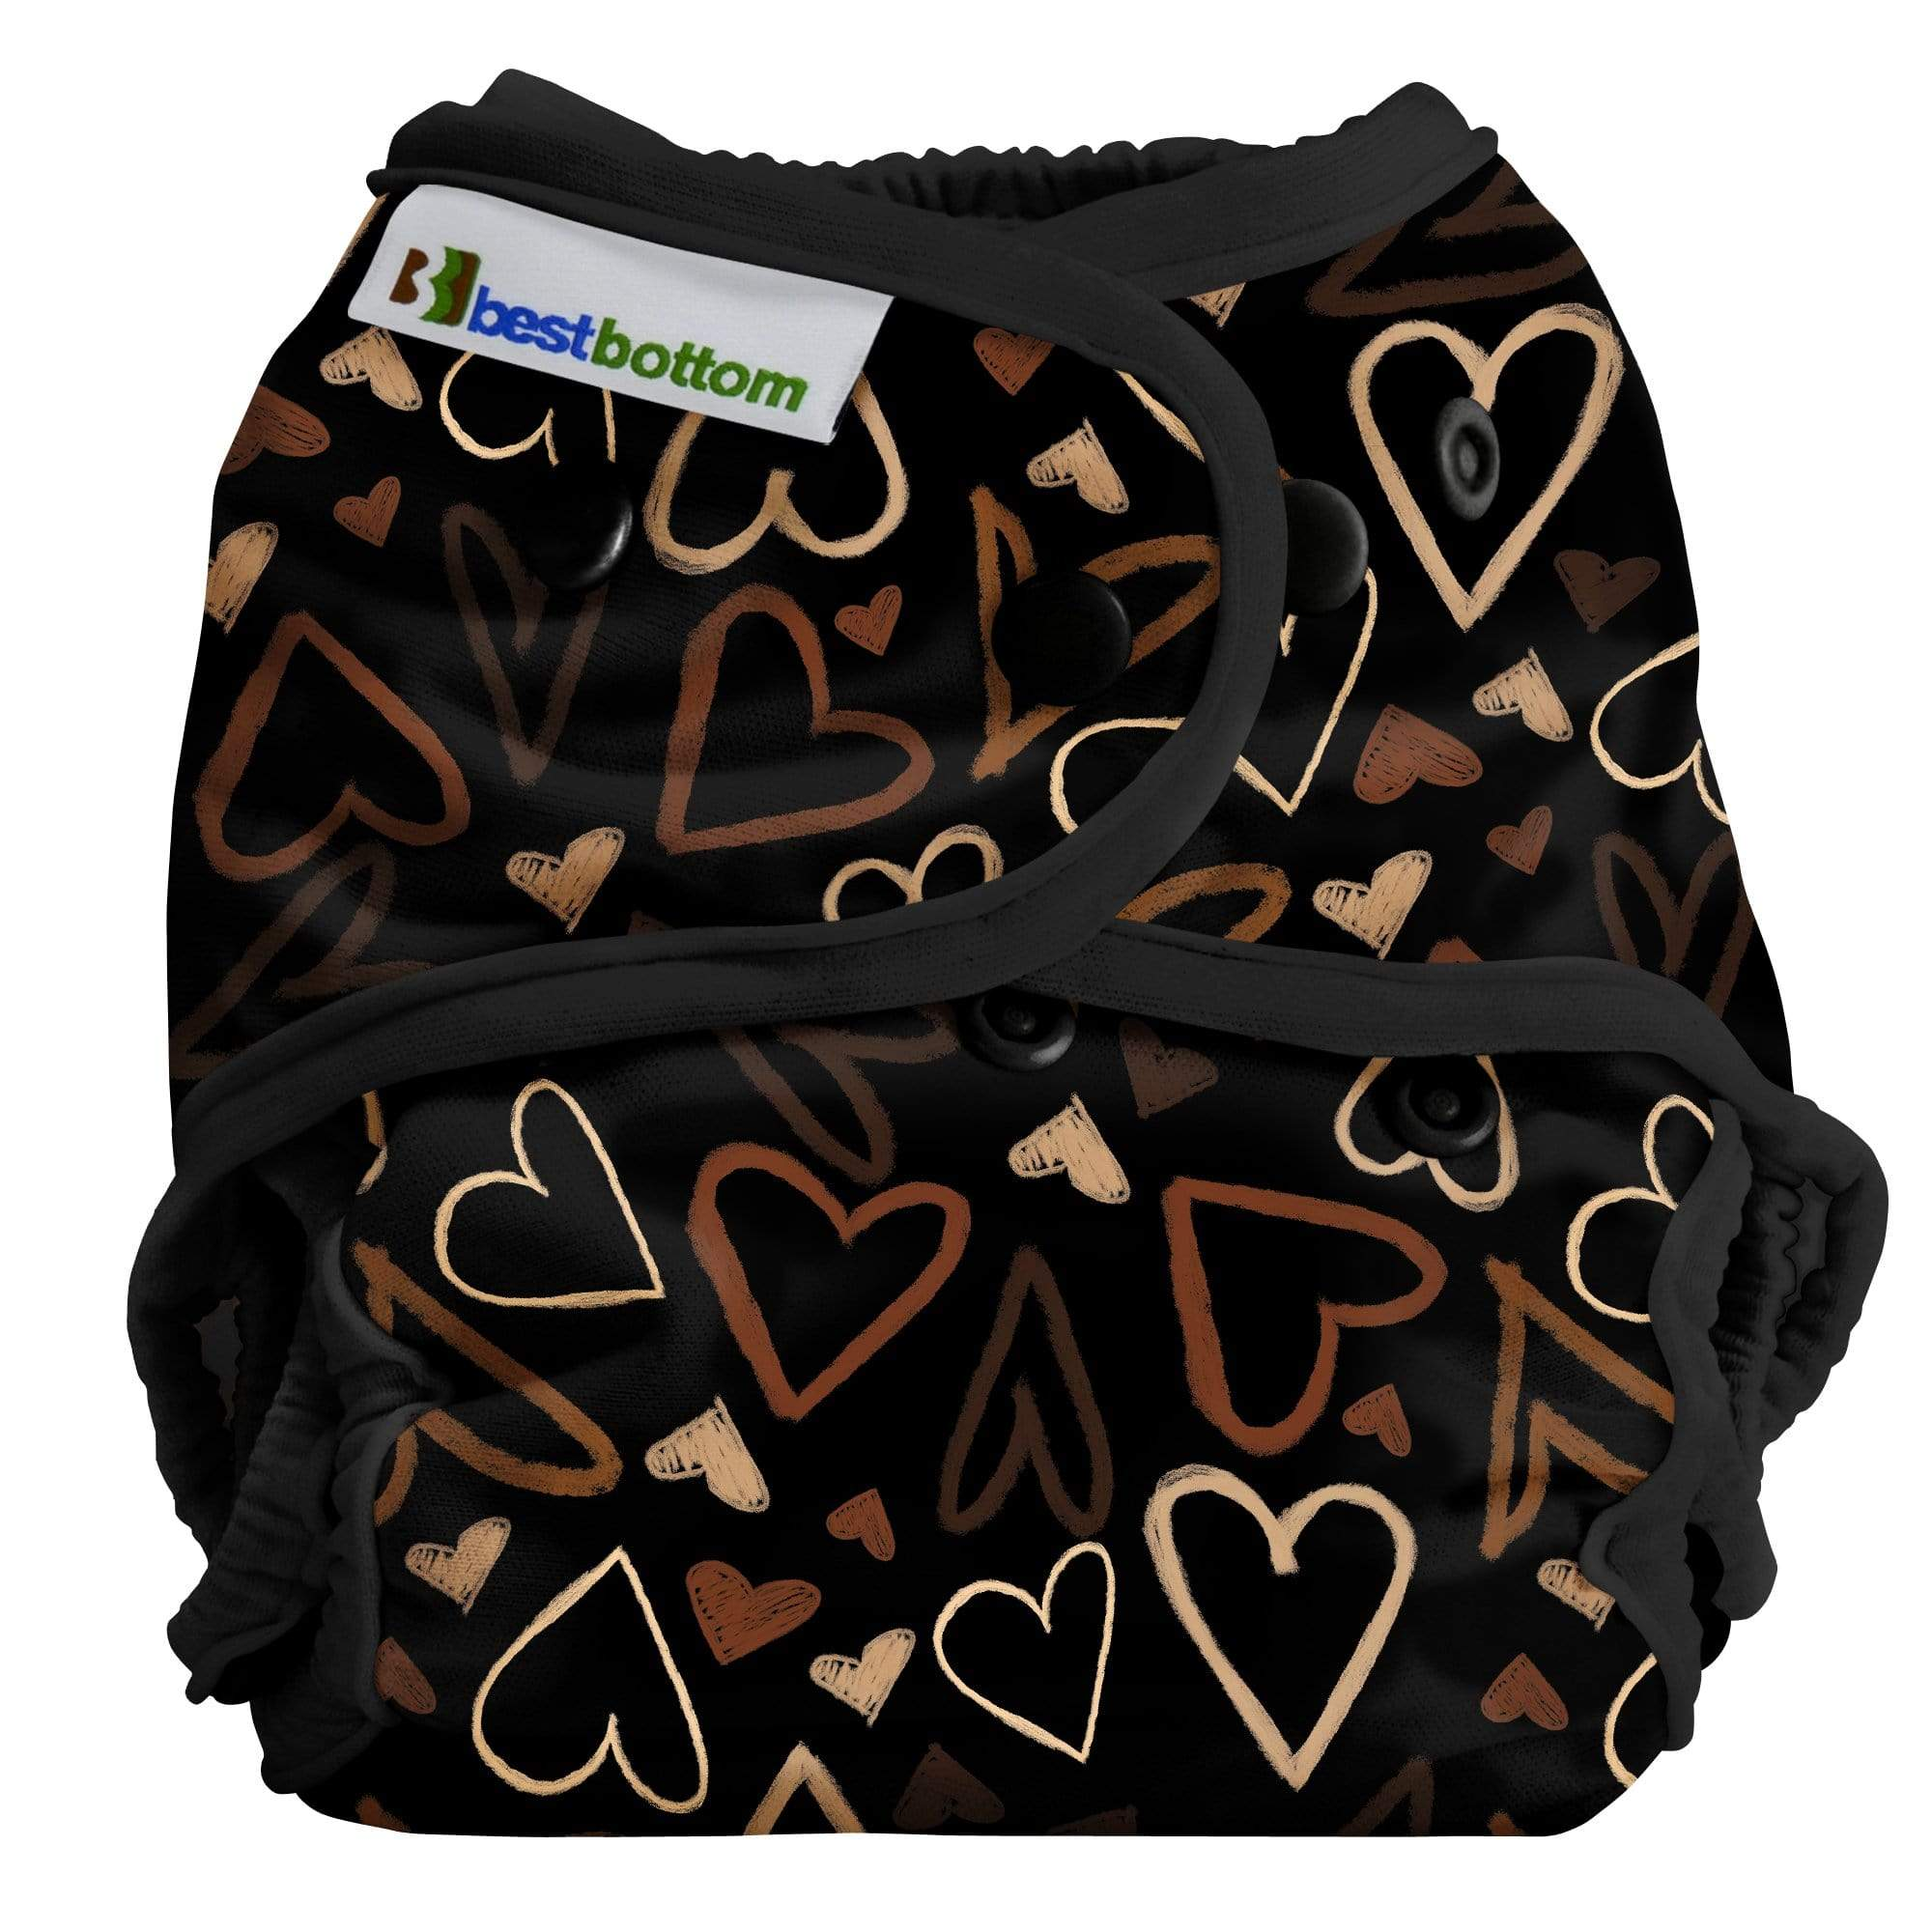 Best Bottom All In Two Diaper Cover - Hearts United One Size